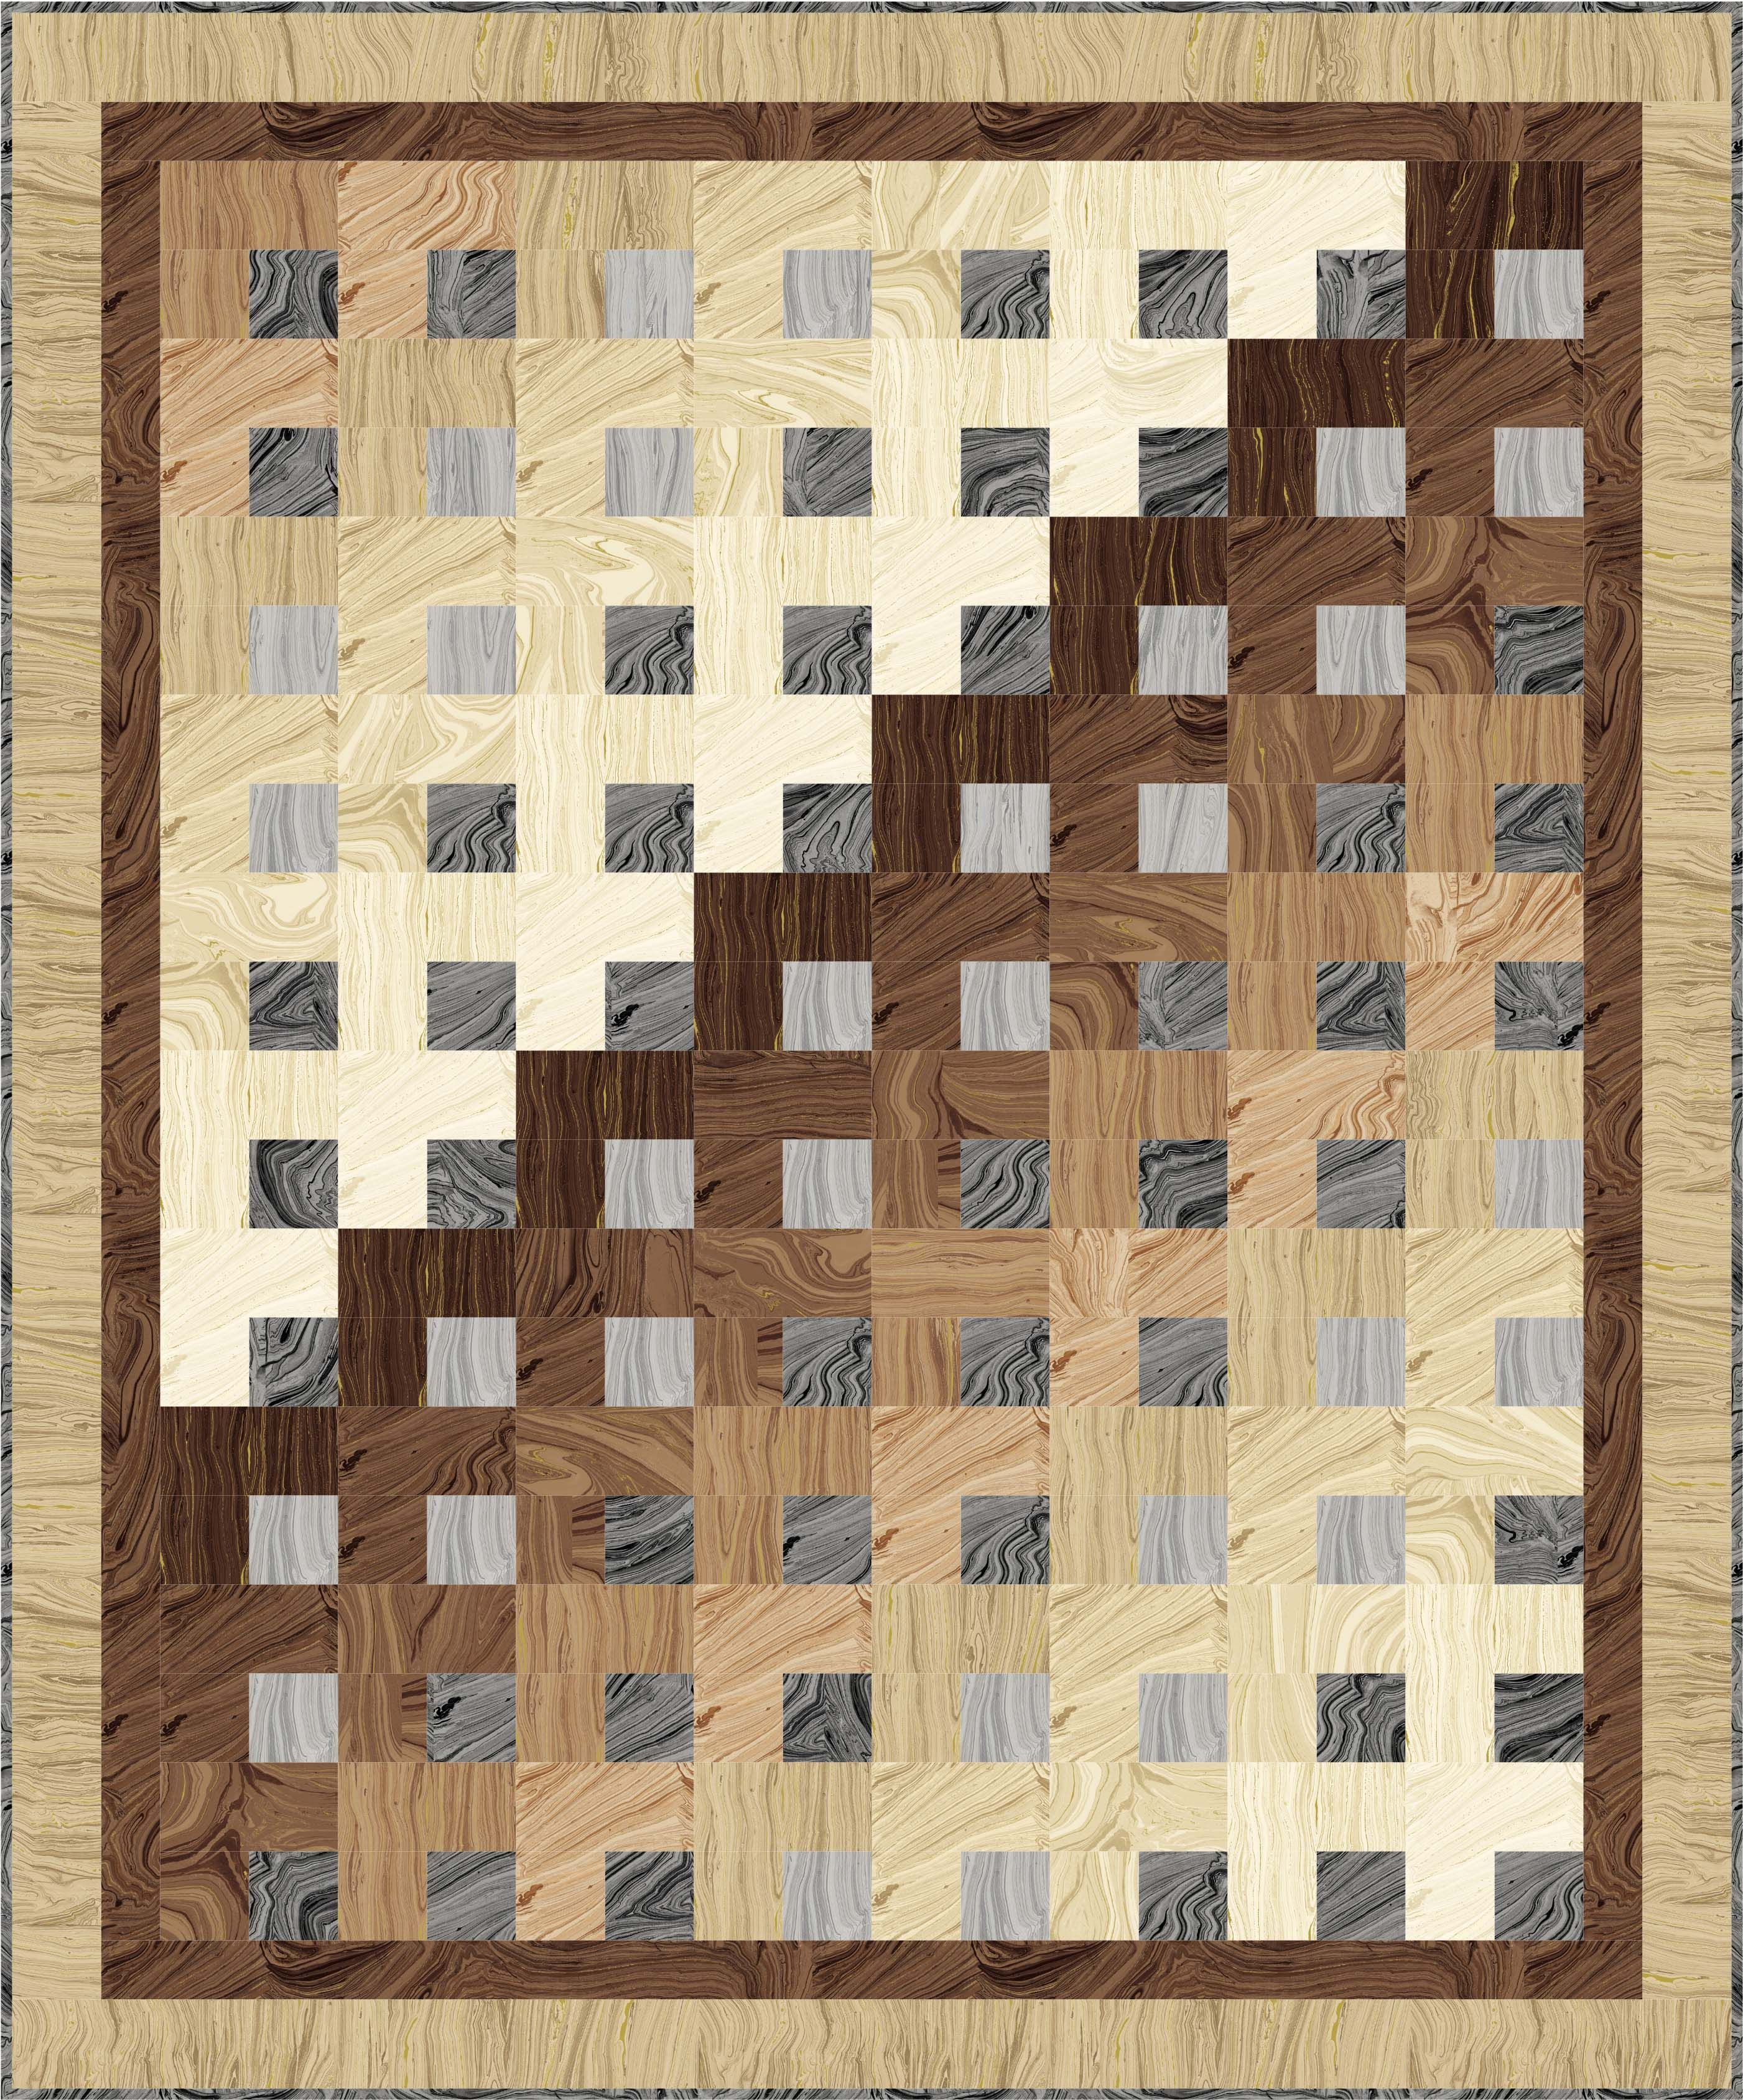 Quilt Patterns For Stonehenge Fabric : Quilt pattern using Northcott Sandscapes gradation fabric Quilts Pinterest Shops, Quilt ...